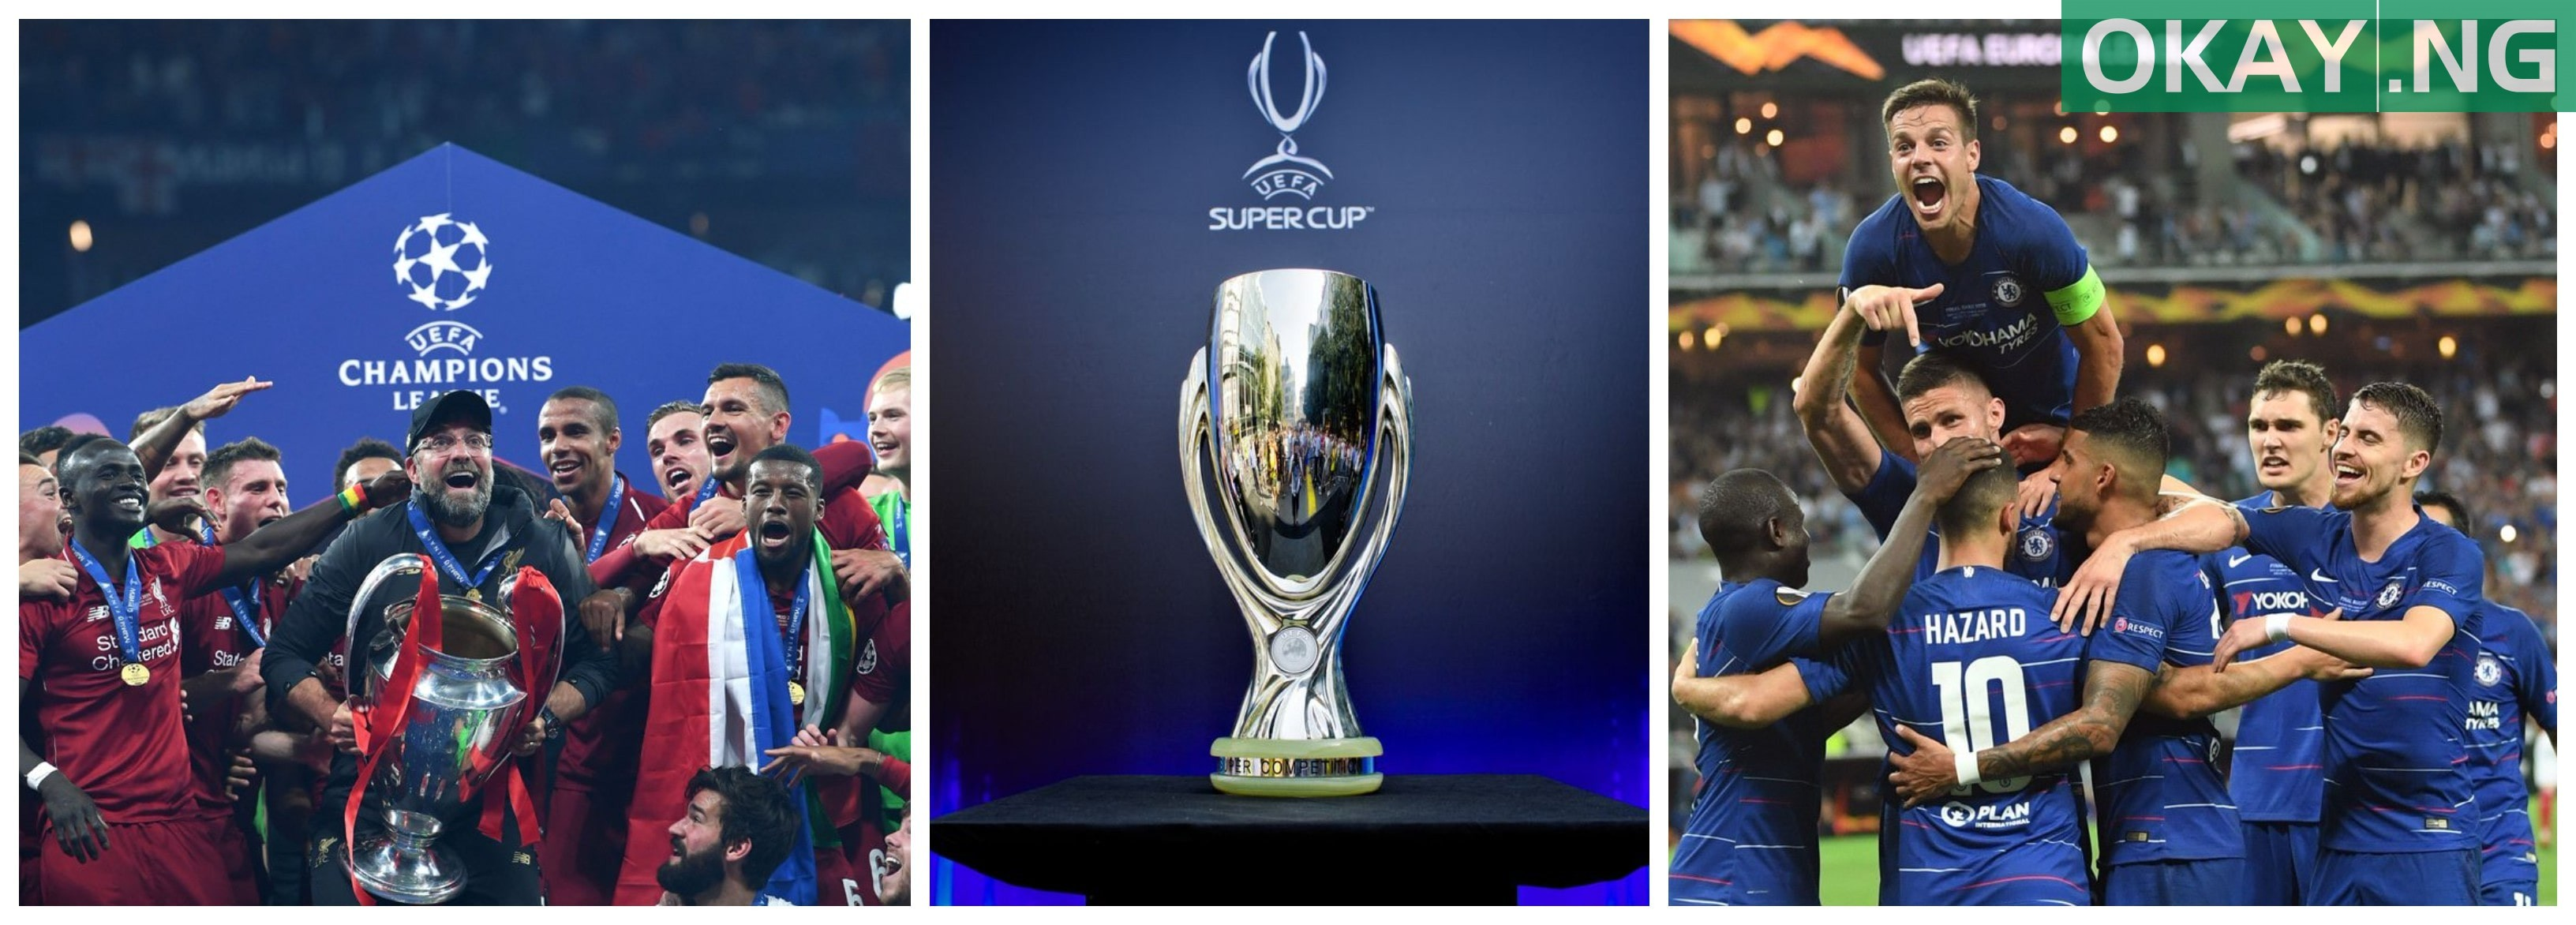 Liverpool To Play Chelsea In 2019 Uefa Super Cup See Date And Venue Okay Ng